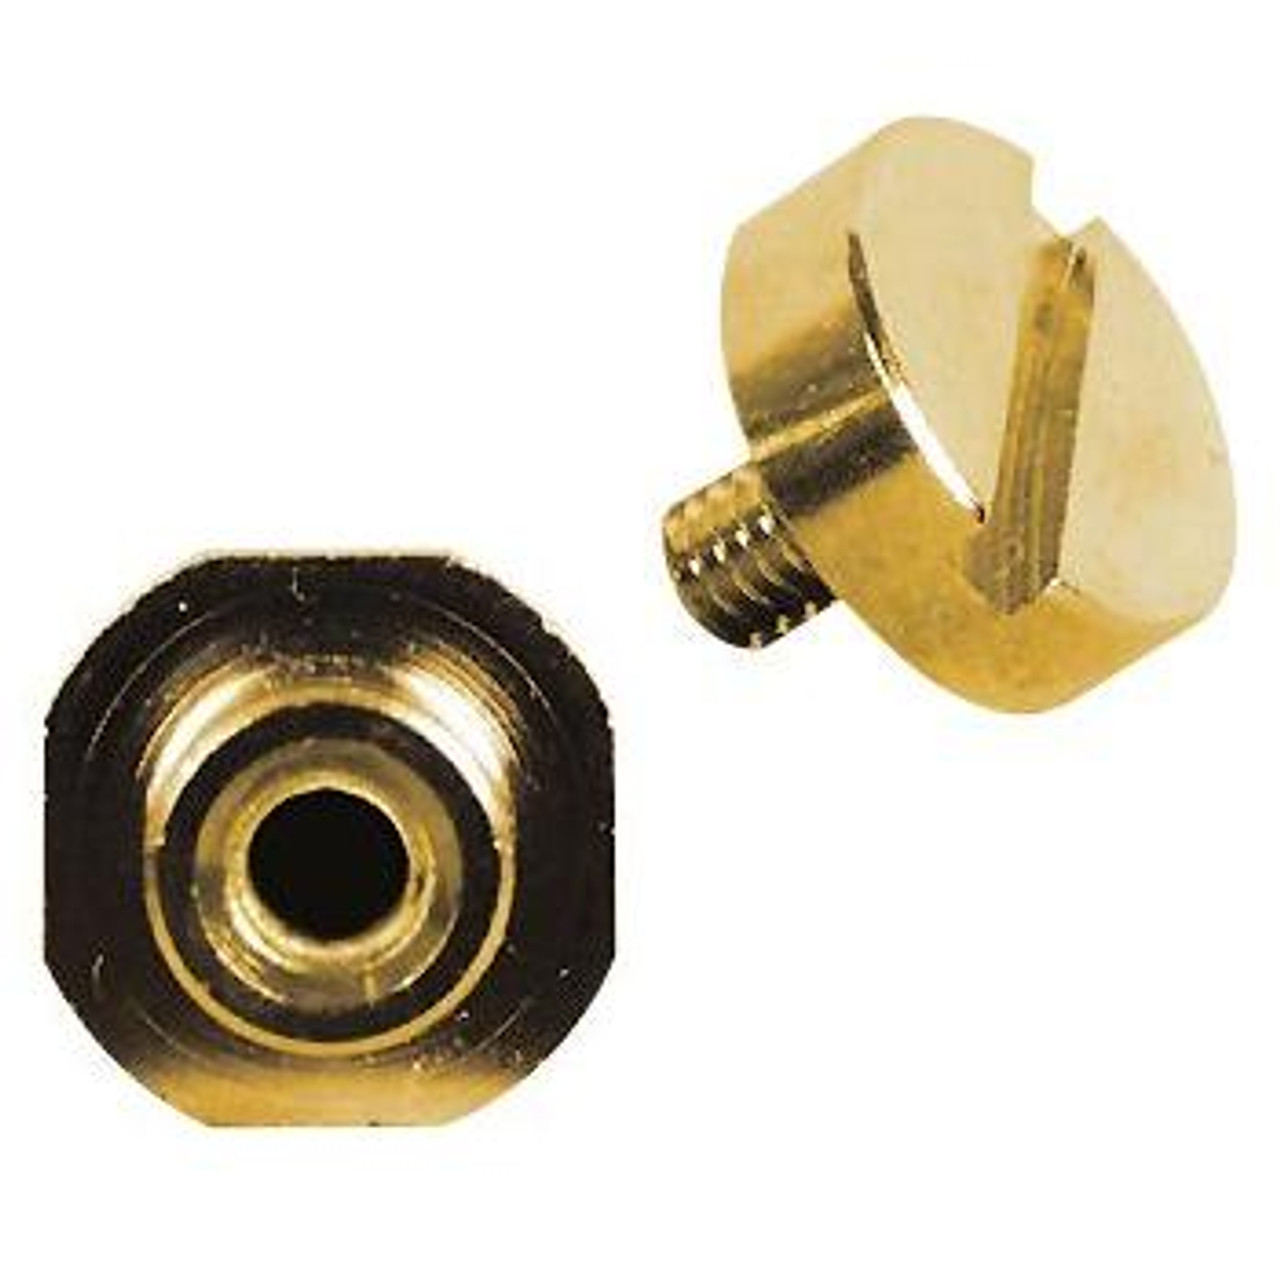 TonePros Locking USA Studs & Anchors-Gold